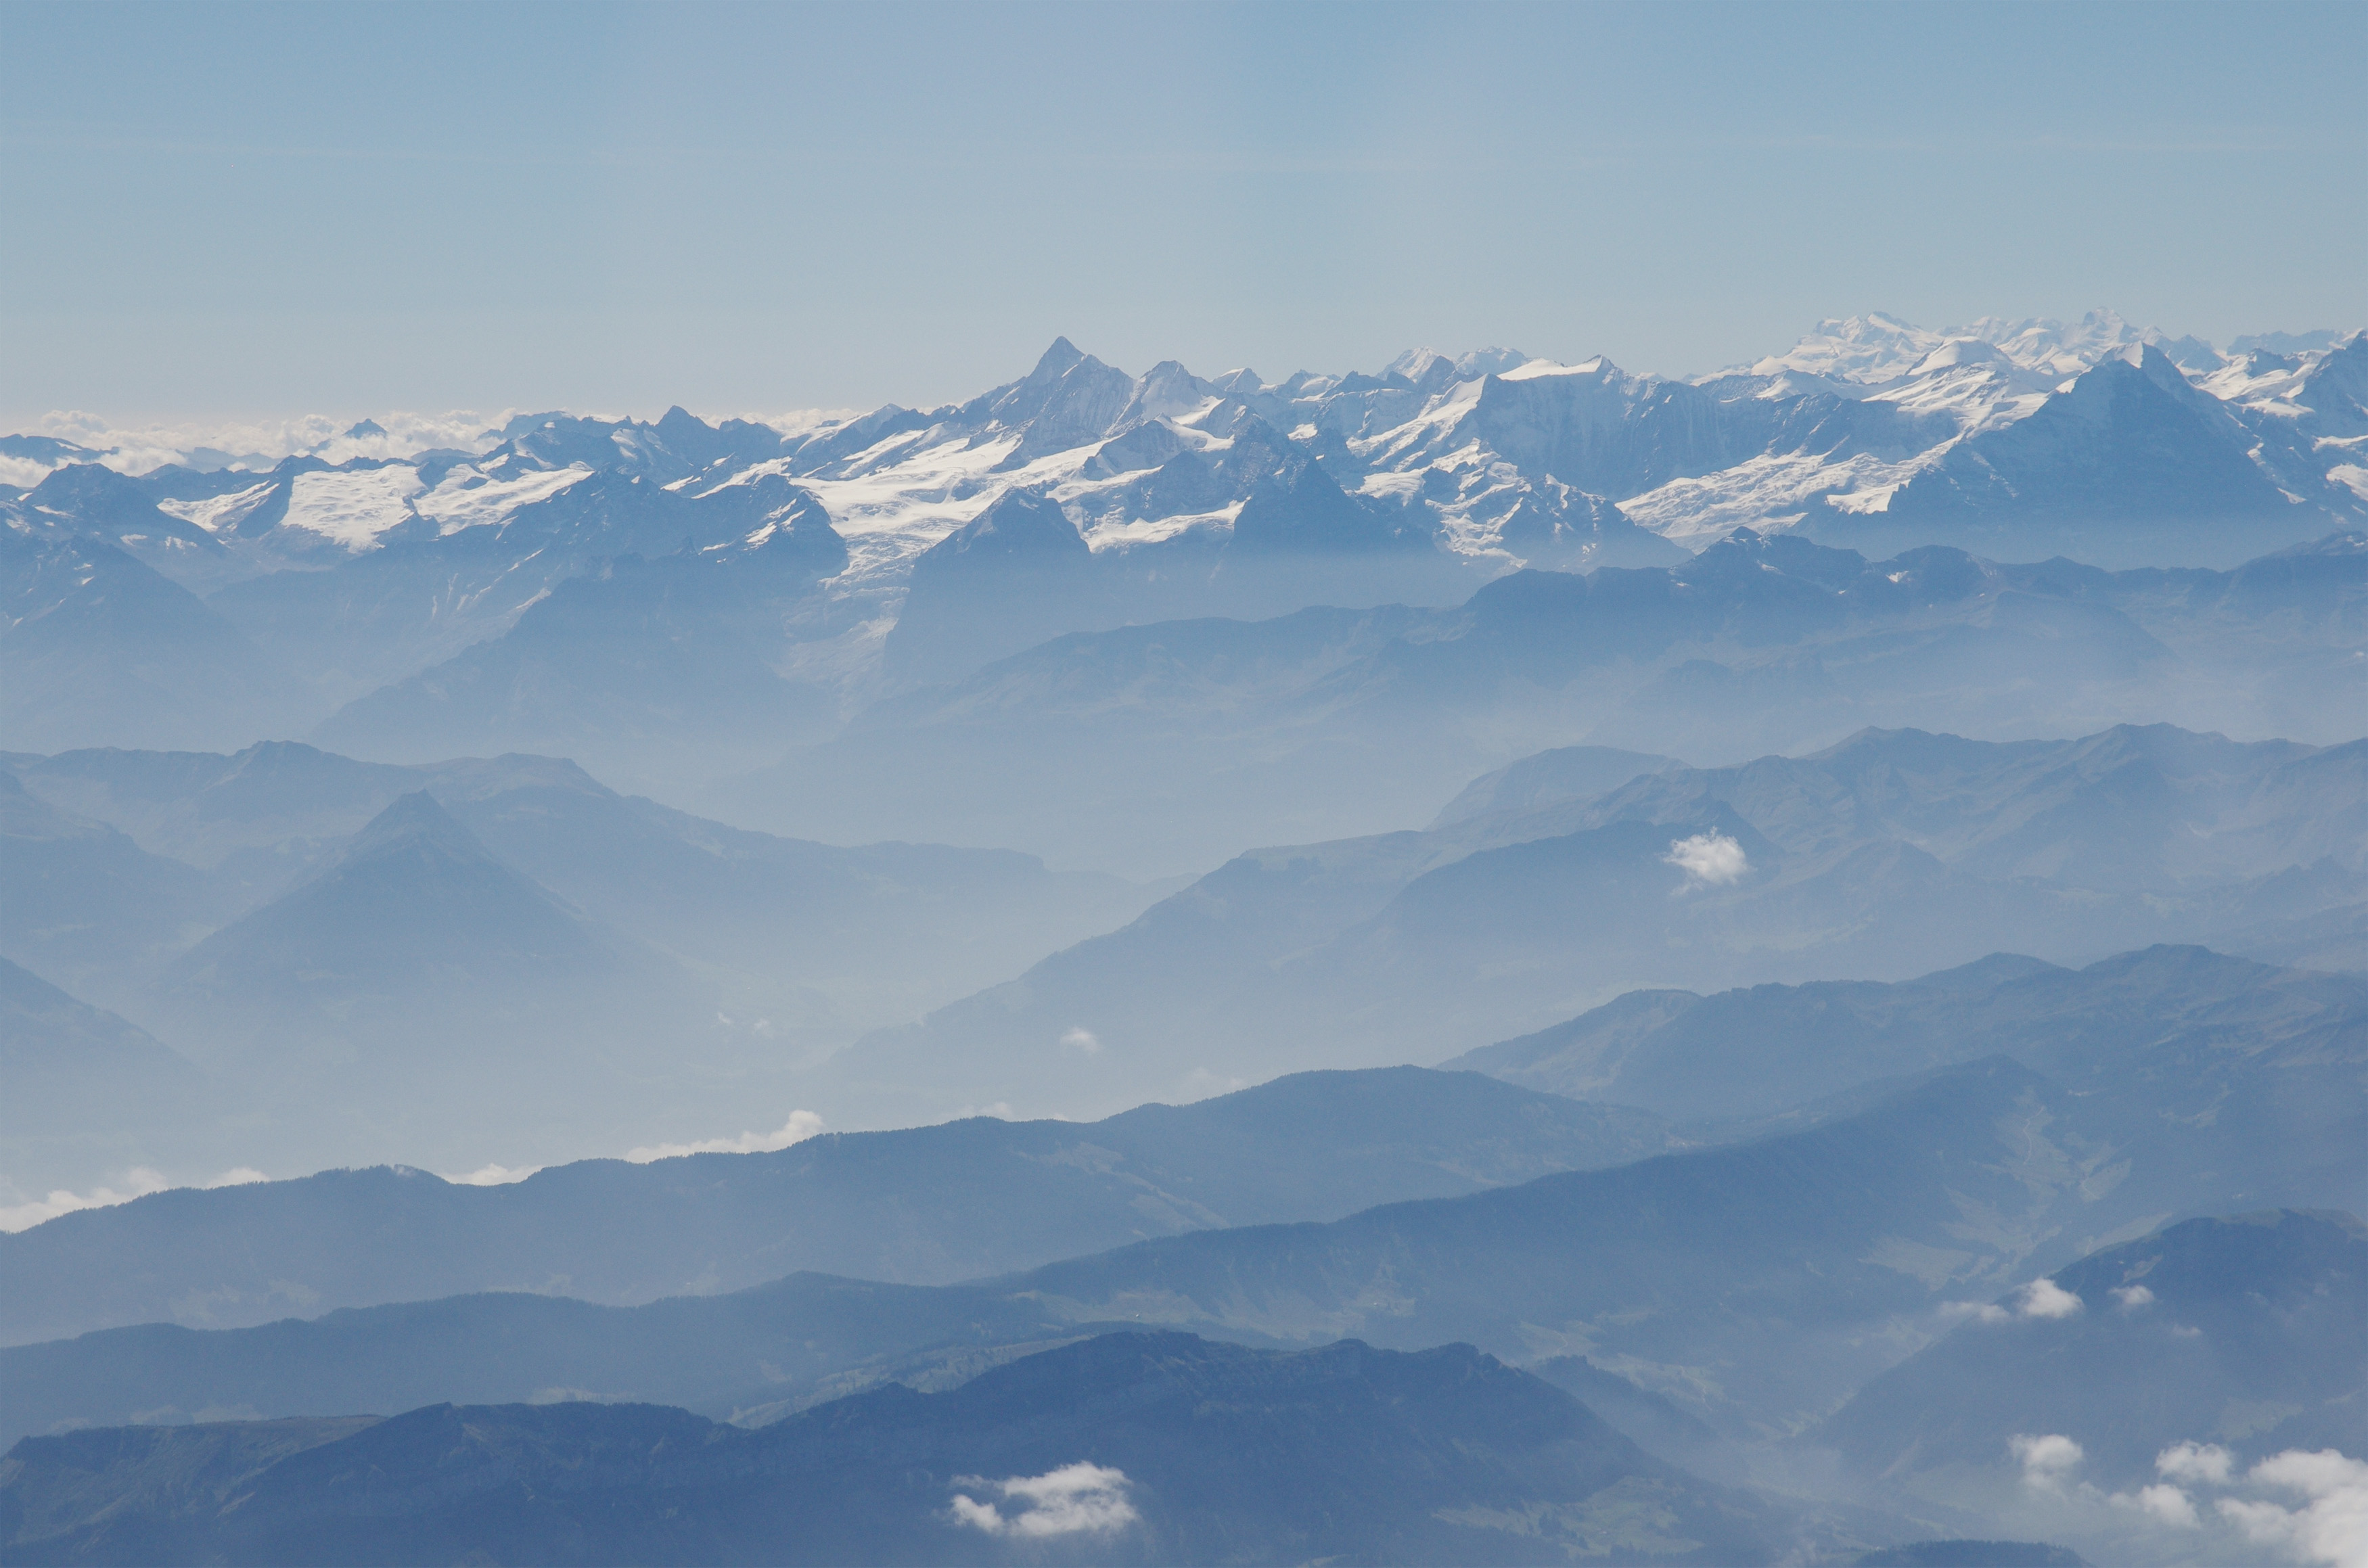 This photo from summer 2012 shows how air pollution in the Alps tends to be confined to lower altitudes, concentrating the deposition of soot and dust on the lower slopes. At center left in this picture, a glacier can be seen extending from a high altitude snow field, above the pollution layer, down into the valley where its lower reach is bathed in pollutants. Image credit: Peter Holy